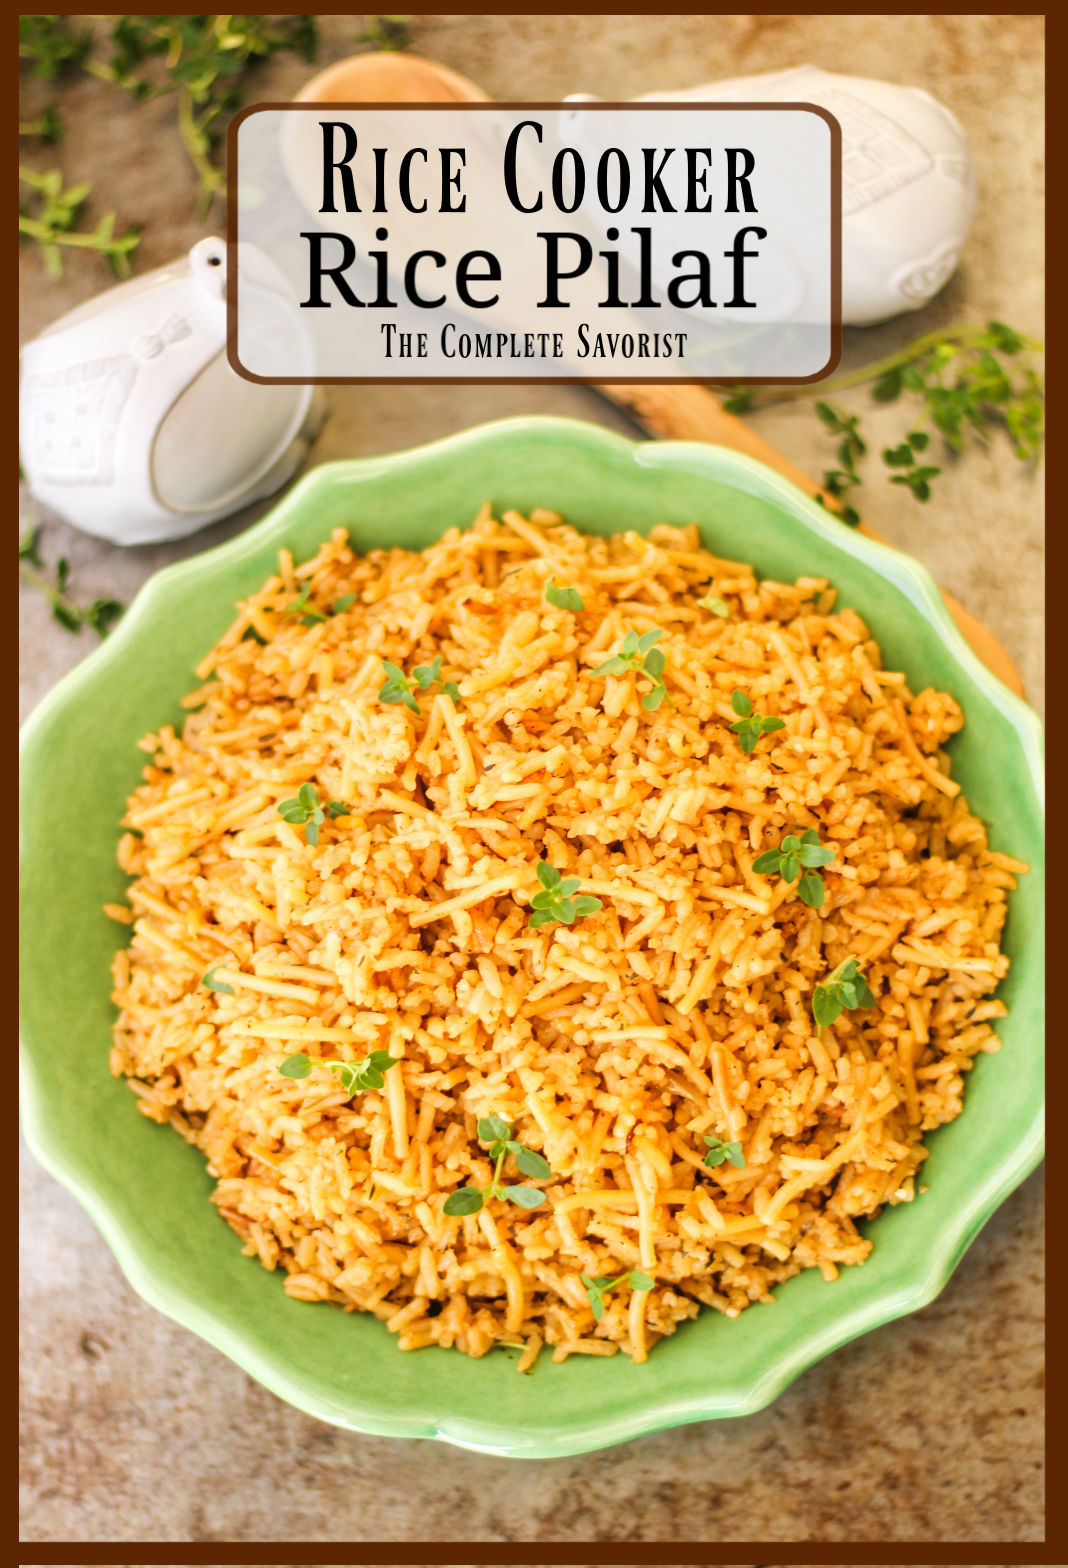 Rice pilaf plated in a light green bowl.